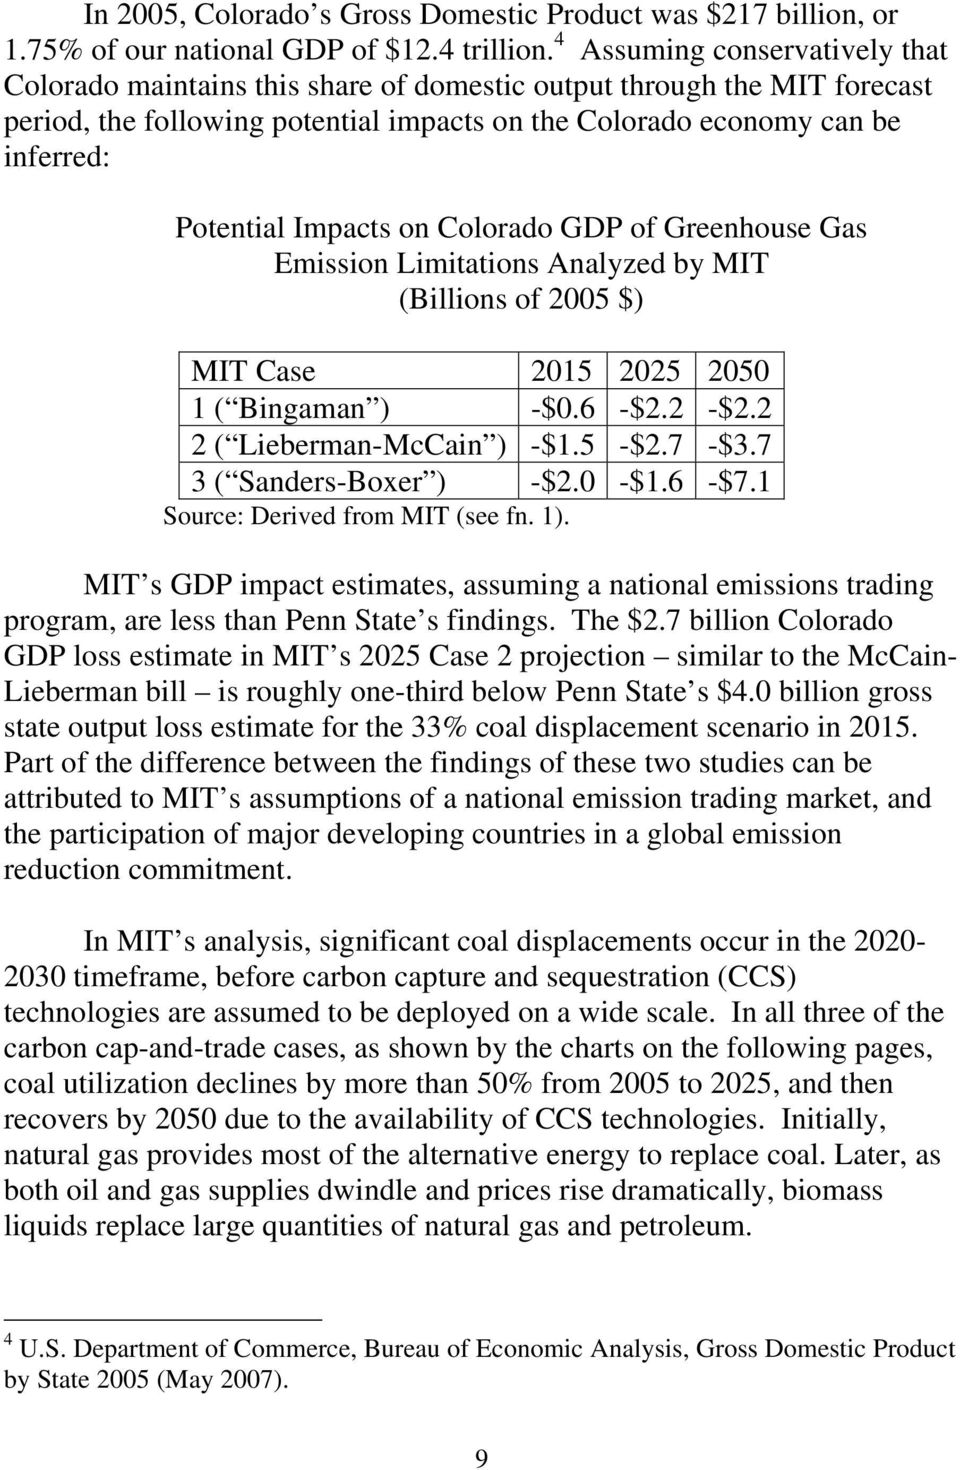 Impacts on Colorado GDP of Greenhouse Gas Emission Limitations Analyzed by MIT (Billions of 2005 $) MIT Case 2015 2025 2050 1 ( Bingaman ) -$0.6 -$2.2 -$2.2 2 ( Lieberman-McCain ) -$1.5 -$2.7 -$3.